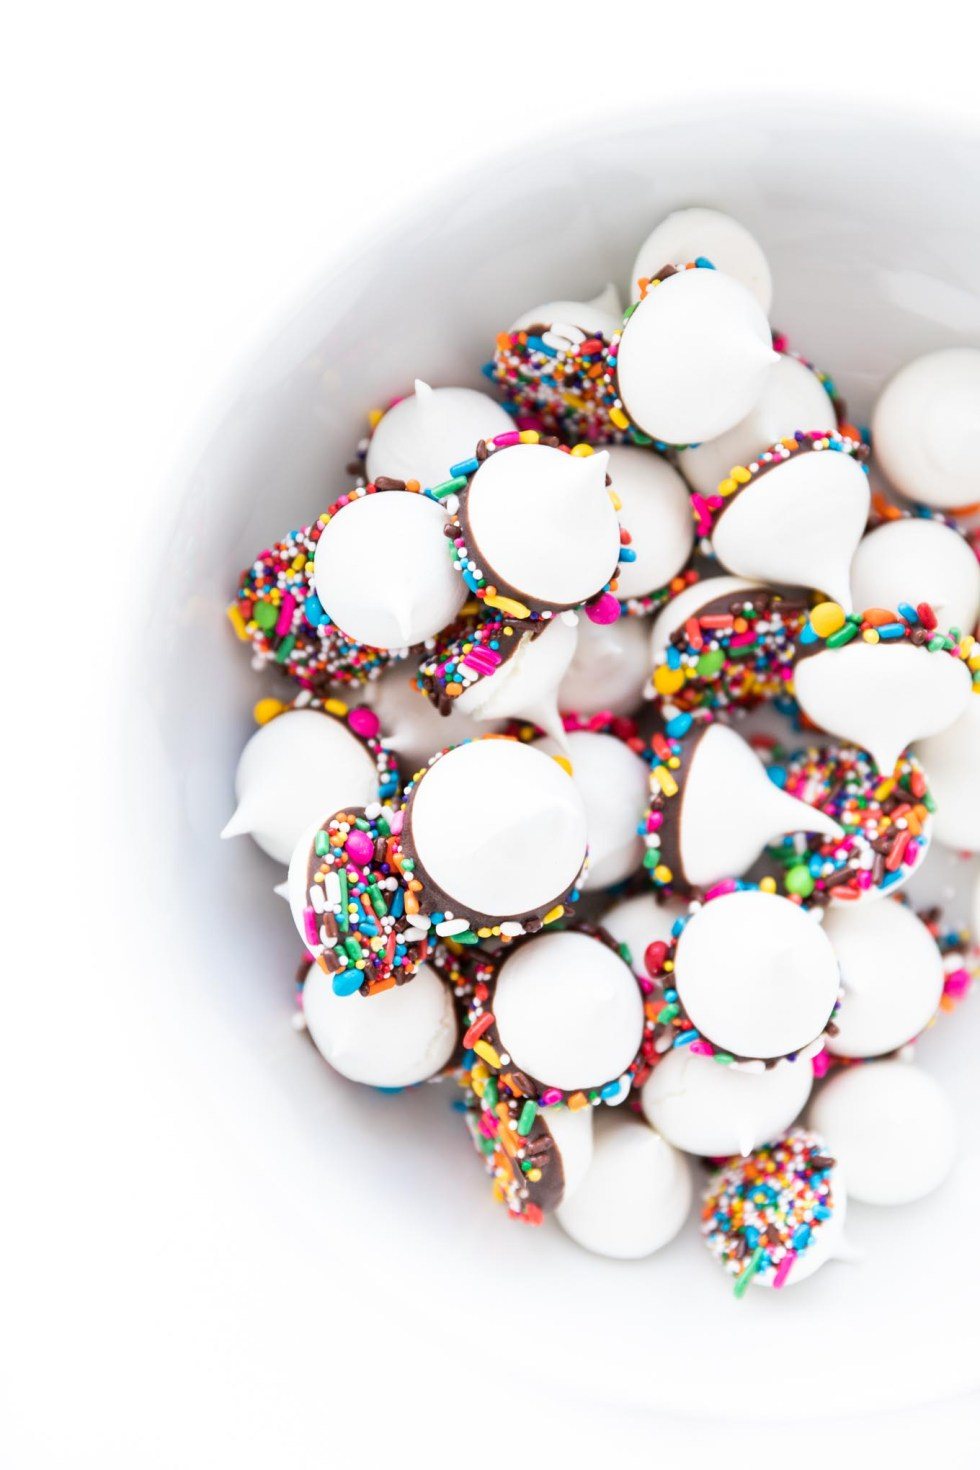 Confetti Meringue Kisses! Light crunch meringue dipped in chocolate and colorful sprinkles! A fun dessert that can be left out at parties and made ahead of time.